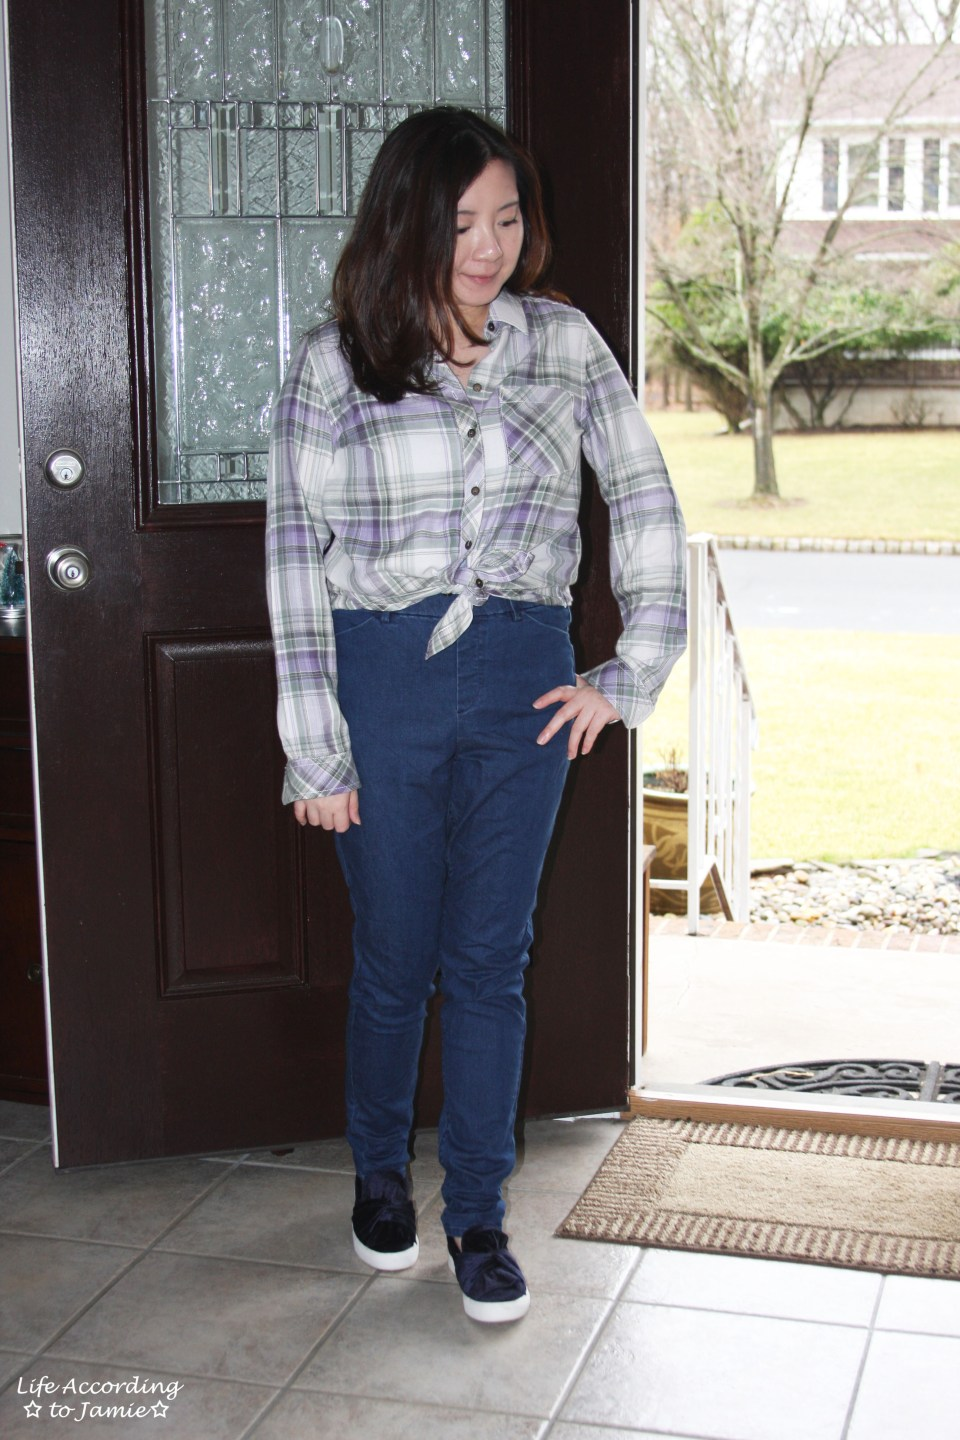 Tied Plaid Top + High Waisted Jeans 5